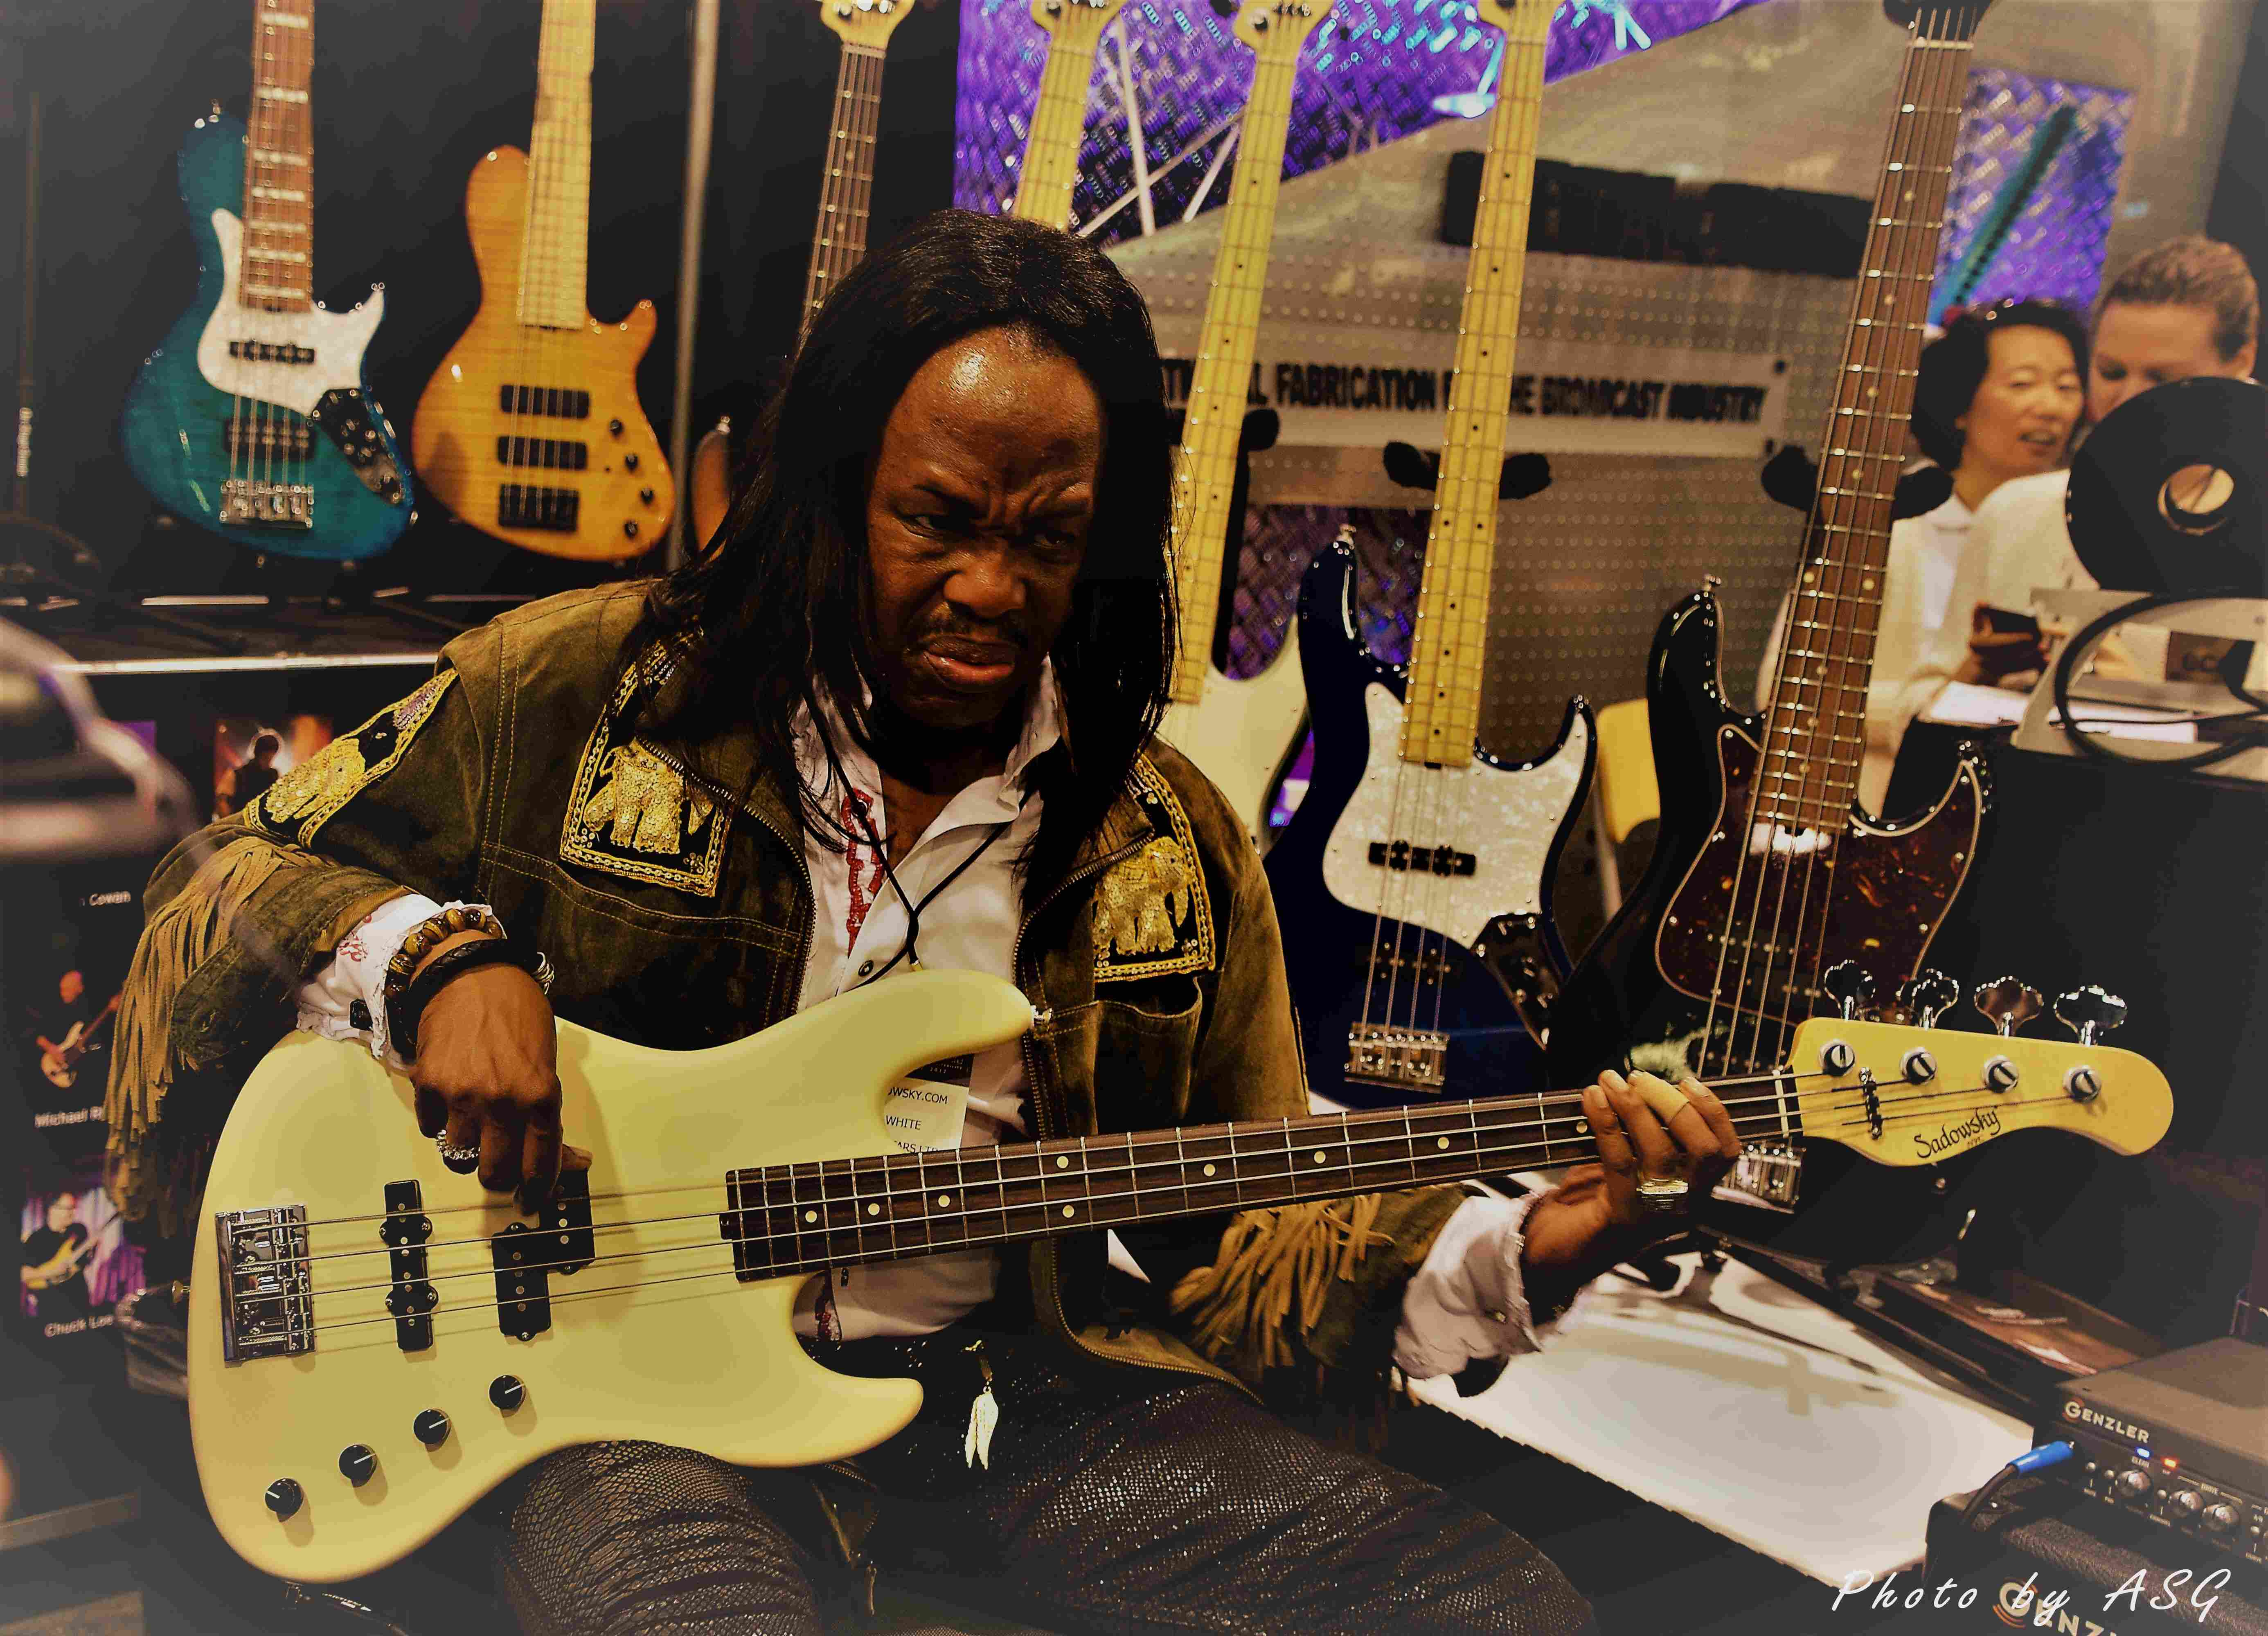 Verdine White (earth, Wind & Fire)